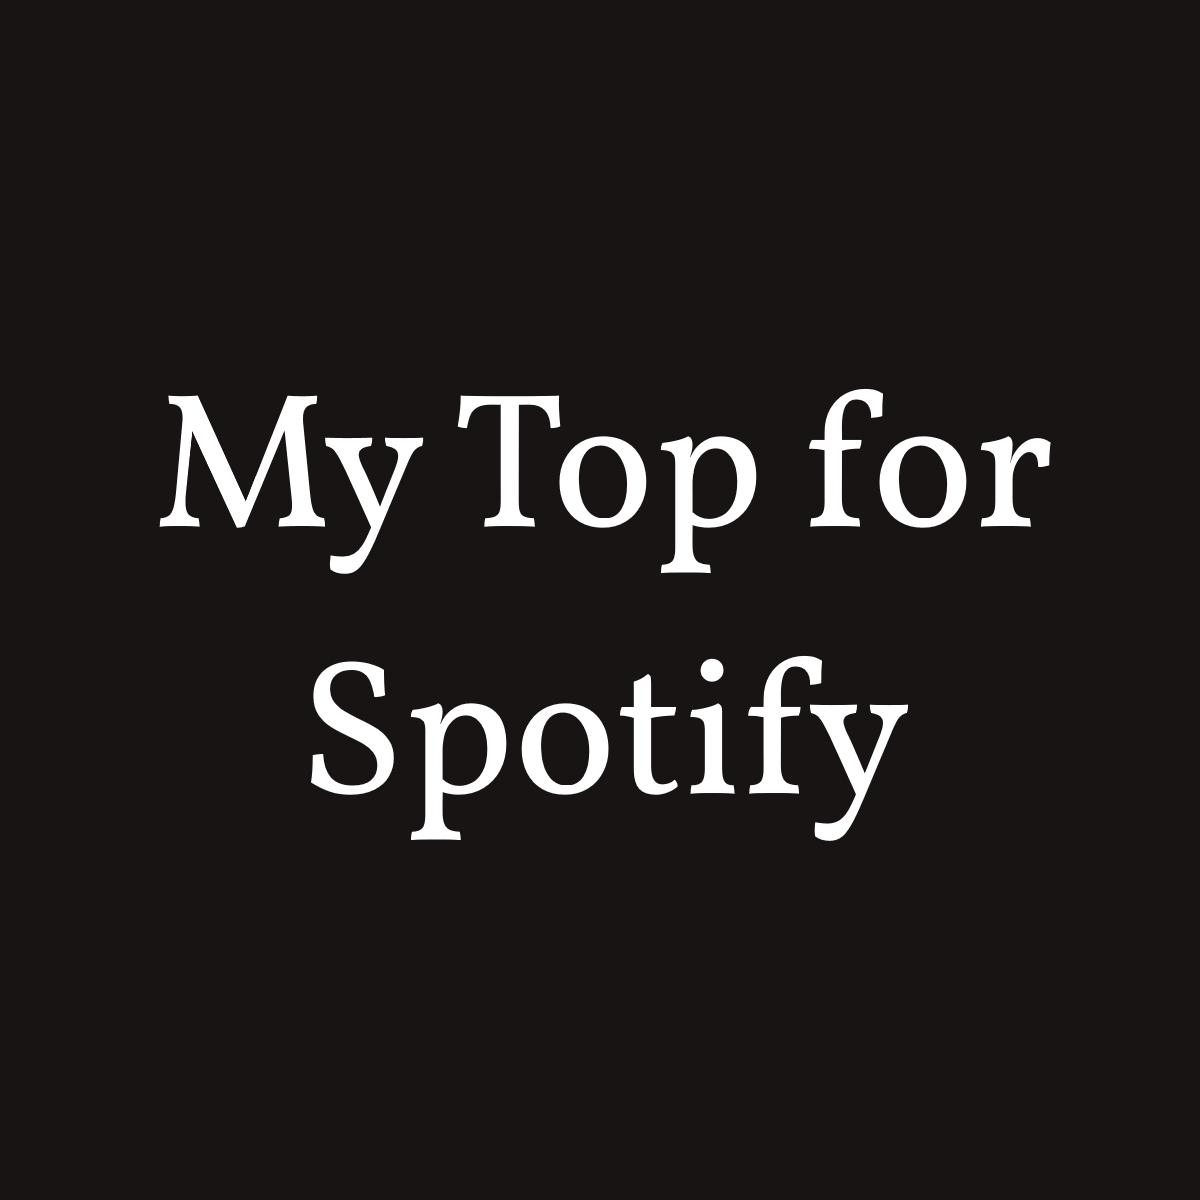 My Top for Spotify